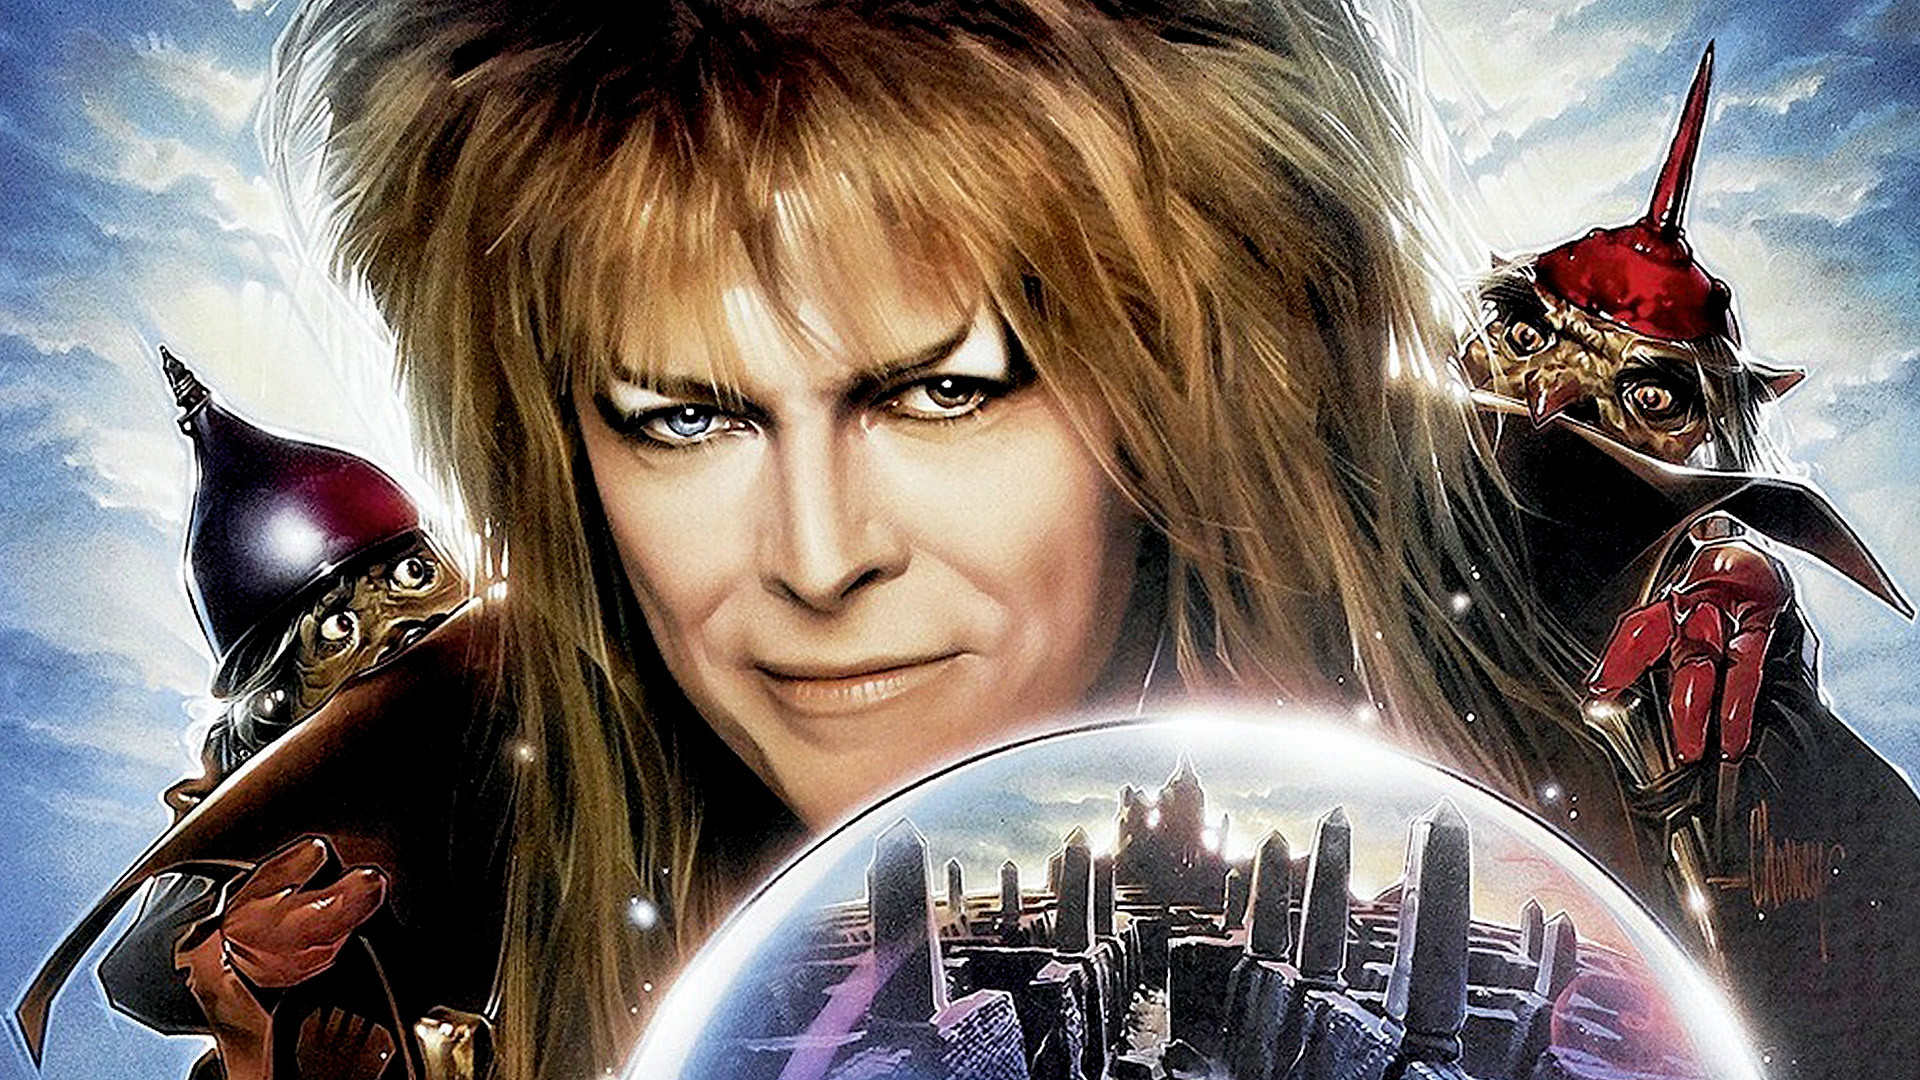 Screenwriter Clears Up Details About That So-Called Labyrinth 'Reboot'